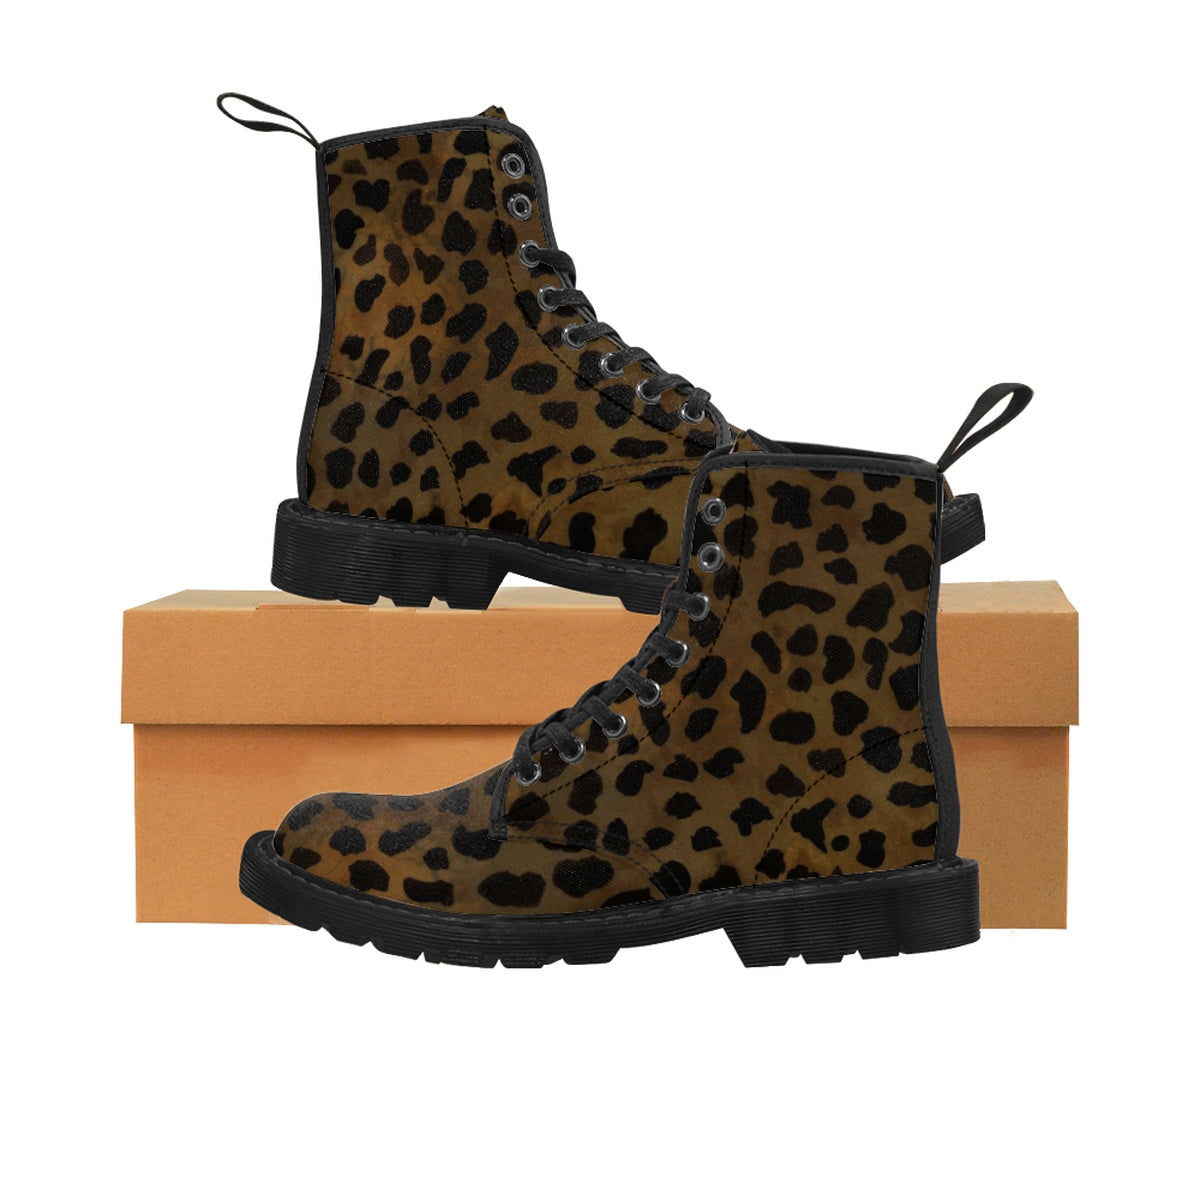 Brown Leopard Animal Print Women's Winter Laced-Up Nylon Canvas Boots (US Size: 6.5-11)-Women's Boots-Black-US 9-Heidi Kimura Art LLC Brown Leopard Women's Boots, Brown Leopard Animal Print Women's Winter Laced-Up Nylon Canvas Boots (US Size: 6.5-11)